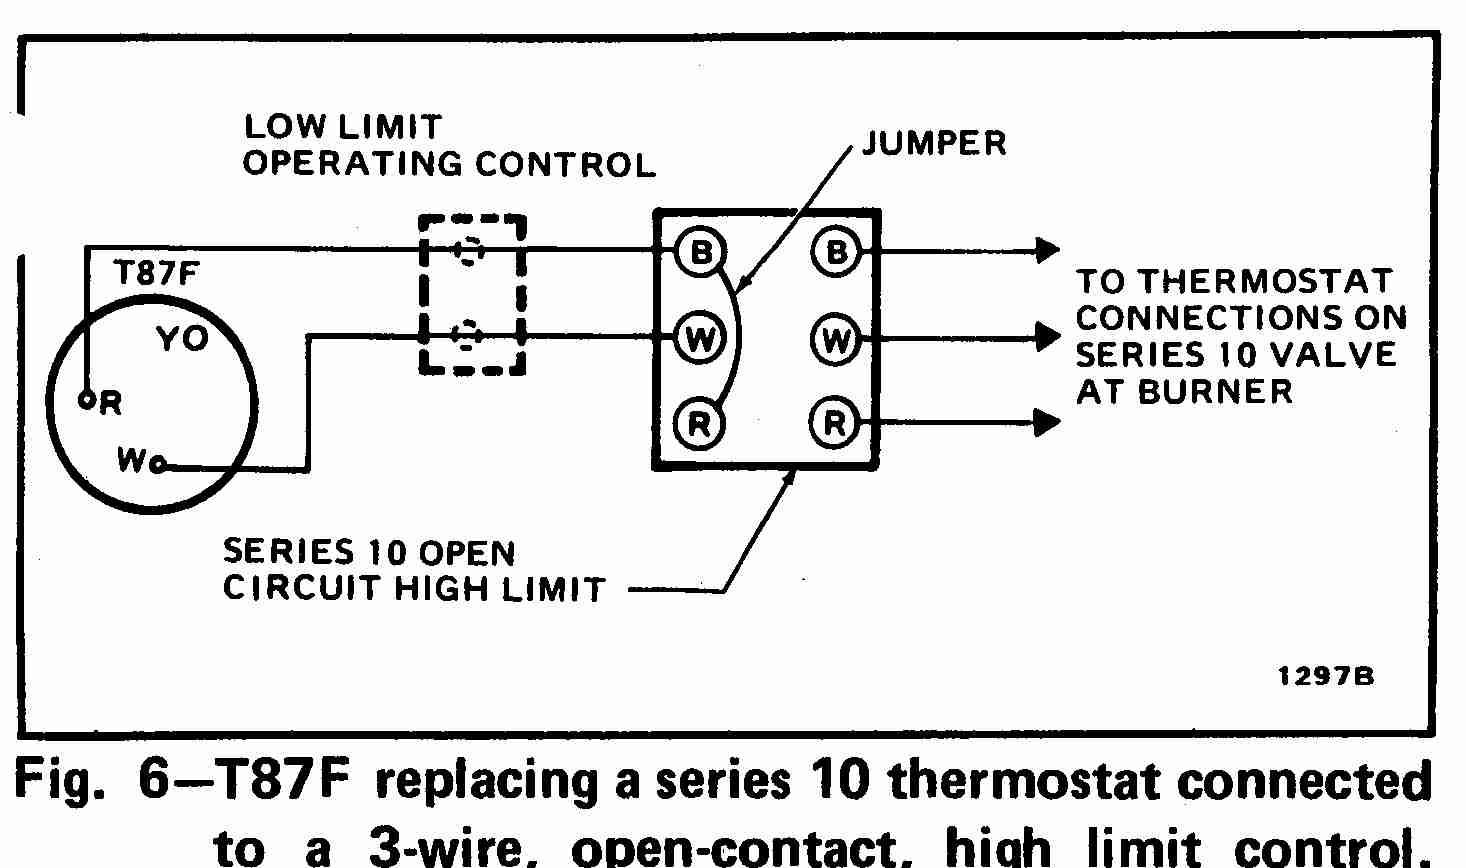 room thermostat wiring diagrams for hvac systems rh inspectapedia com wiring diagram for electric baseboard heater with thermostat wiring diagram heating thermostat